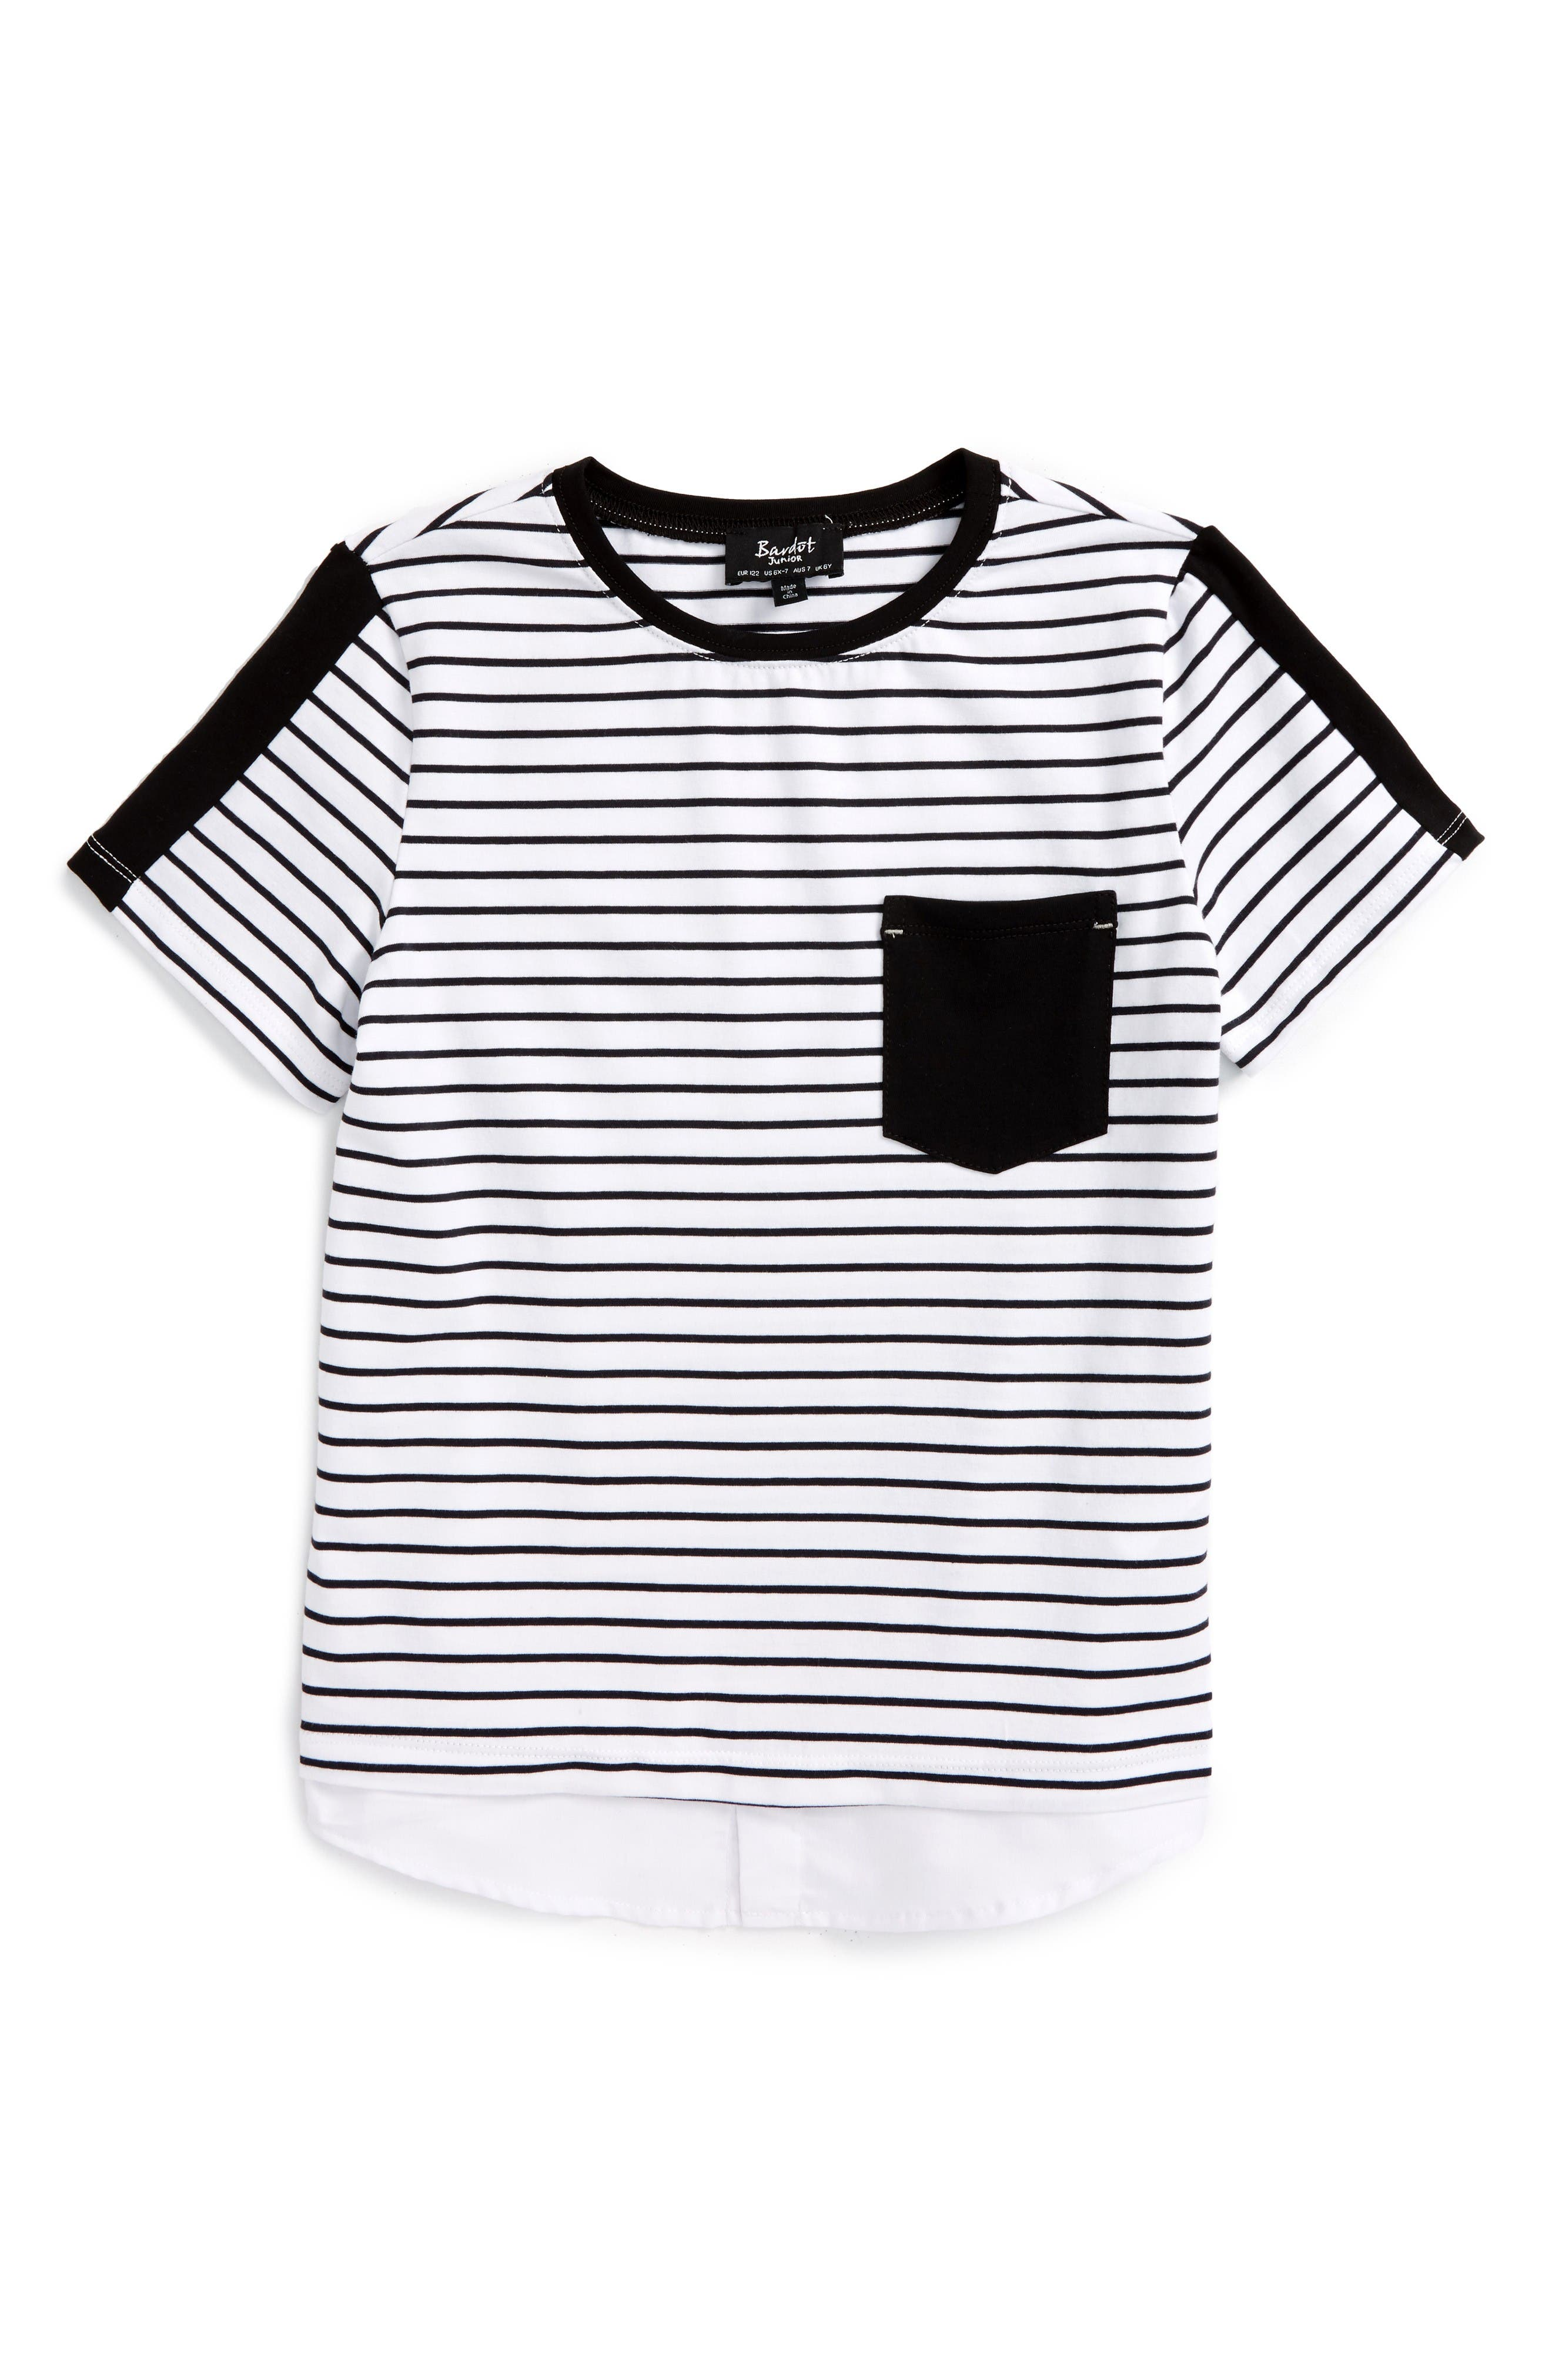 Alternate Image 1 Selected - Bardot Junior Stripe T-Shirt (Toddler Boys & Little Boys)